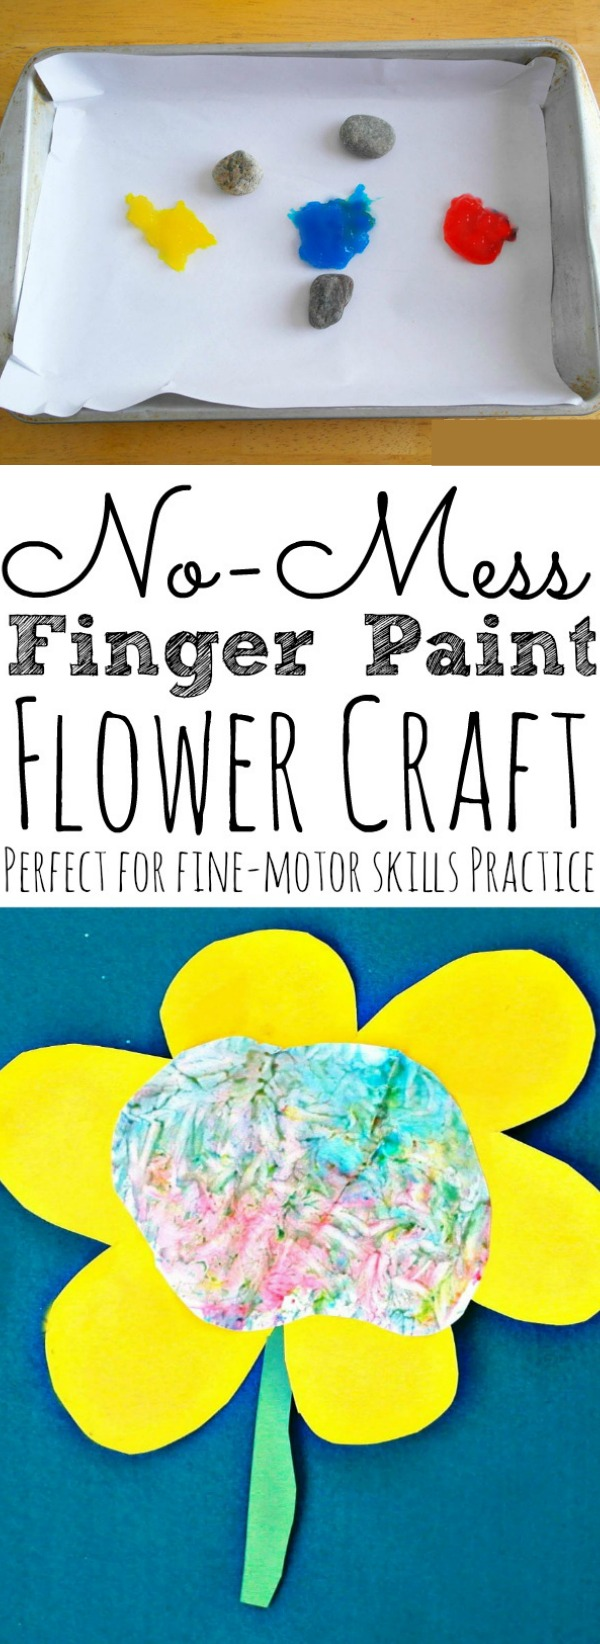 Finger Paint Flower Craft